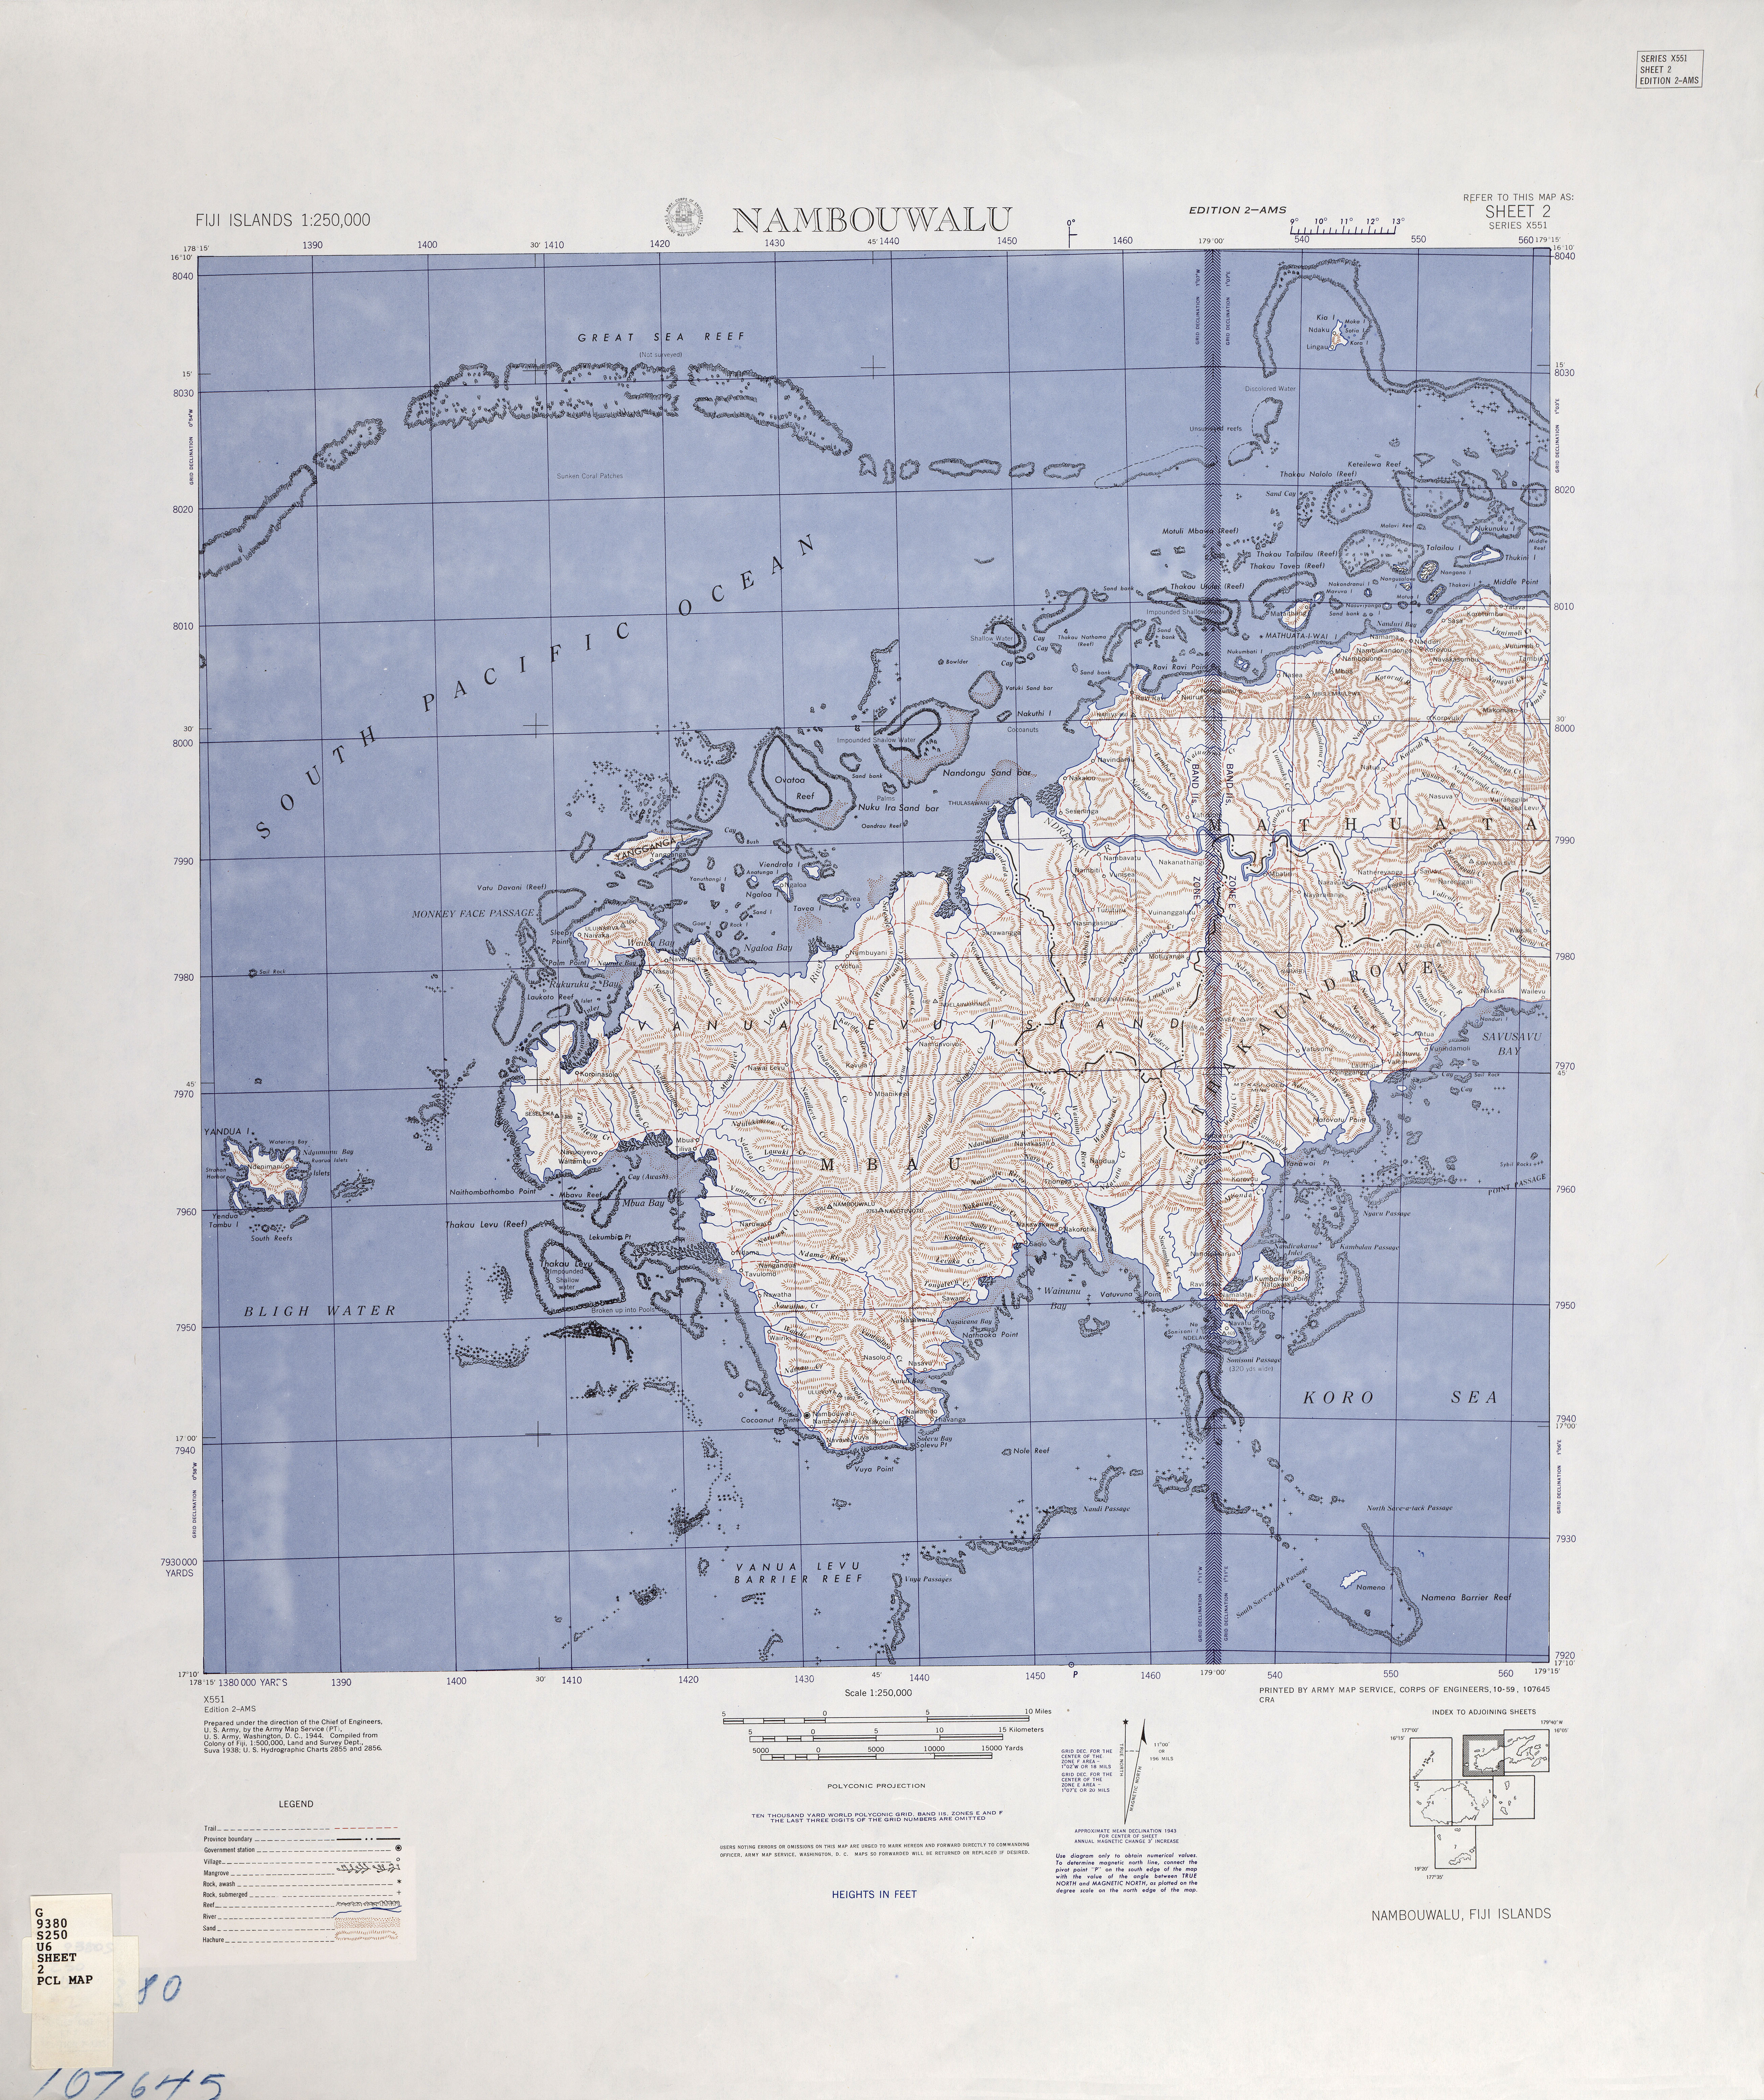 Fiji Islands AMS Topographic Maps - Perry-Castañeda Map Collection ...